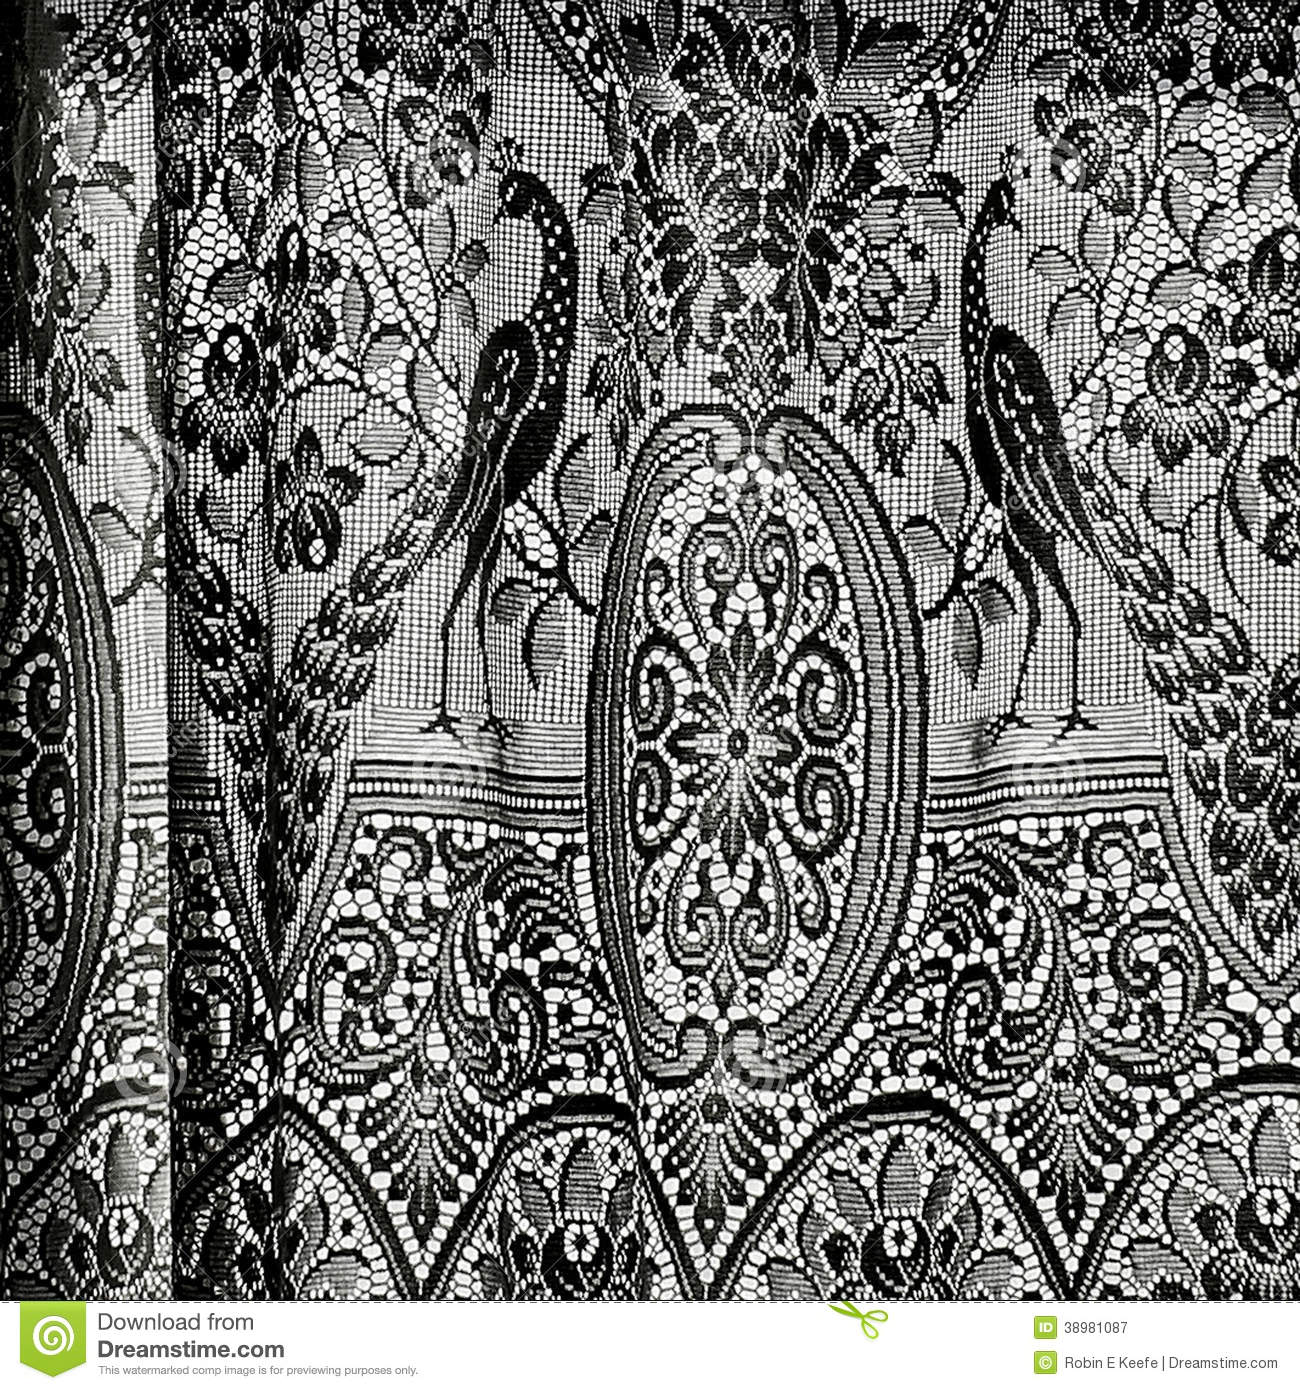 Peacock Photography Black And White Antique curtains in black and